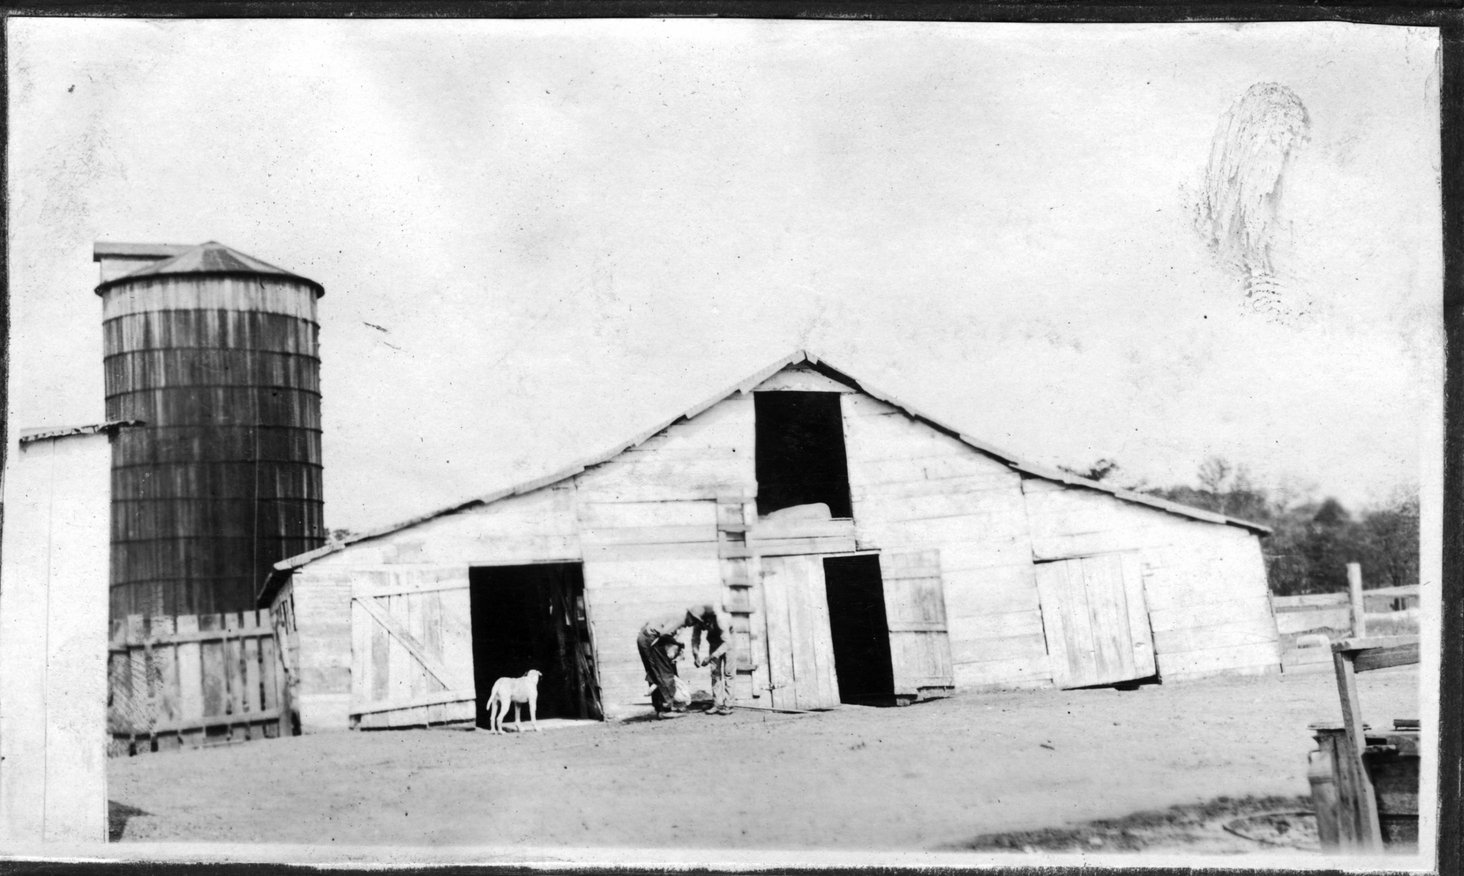 012~W. L. Pinkston Rebuilt Barn Apr 1921.jpg